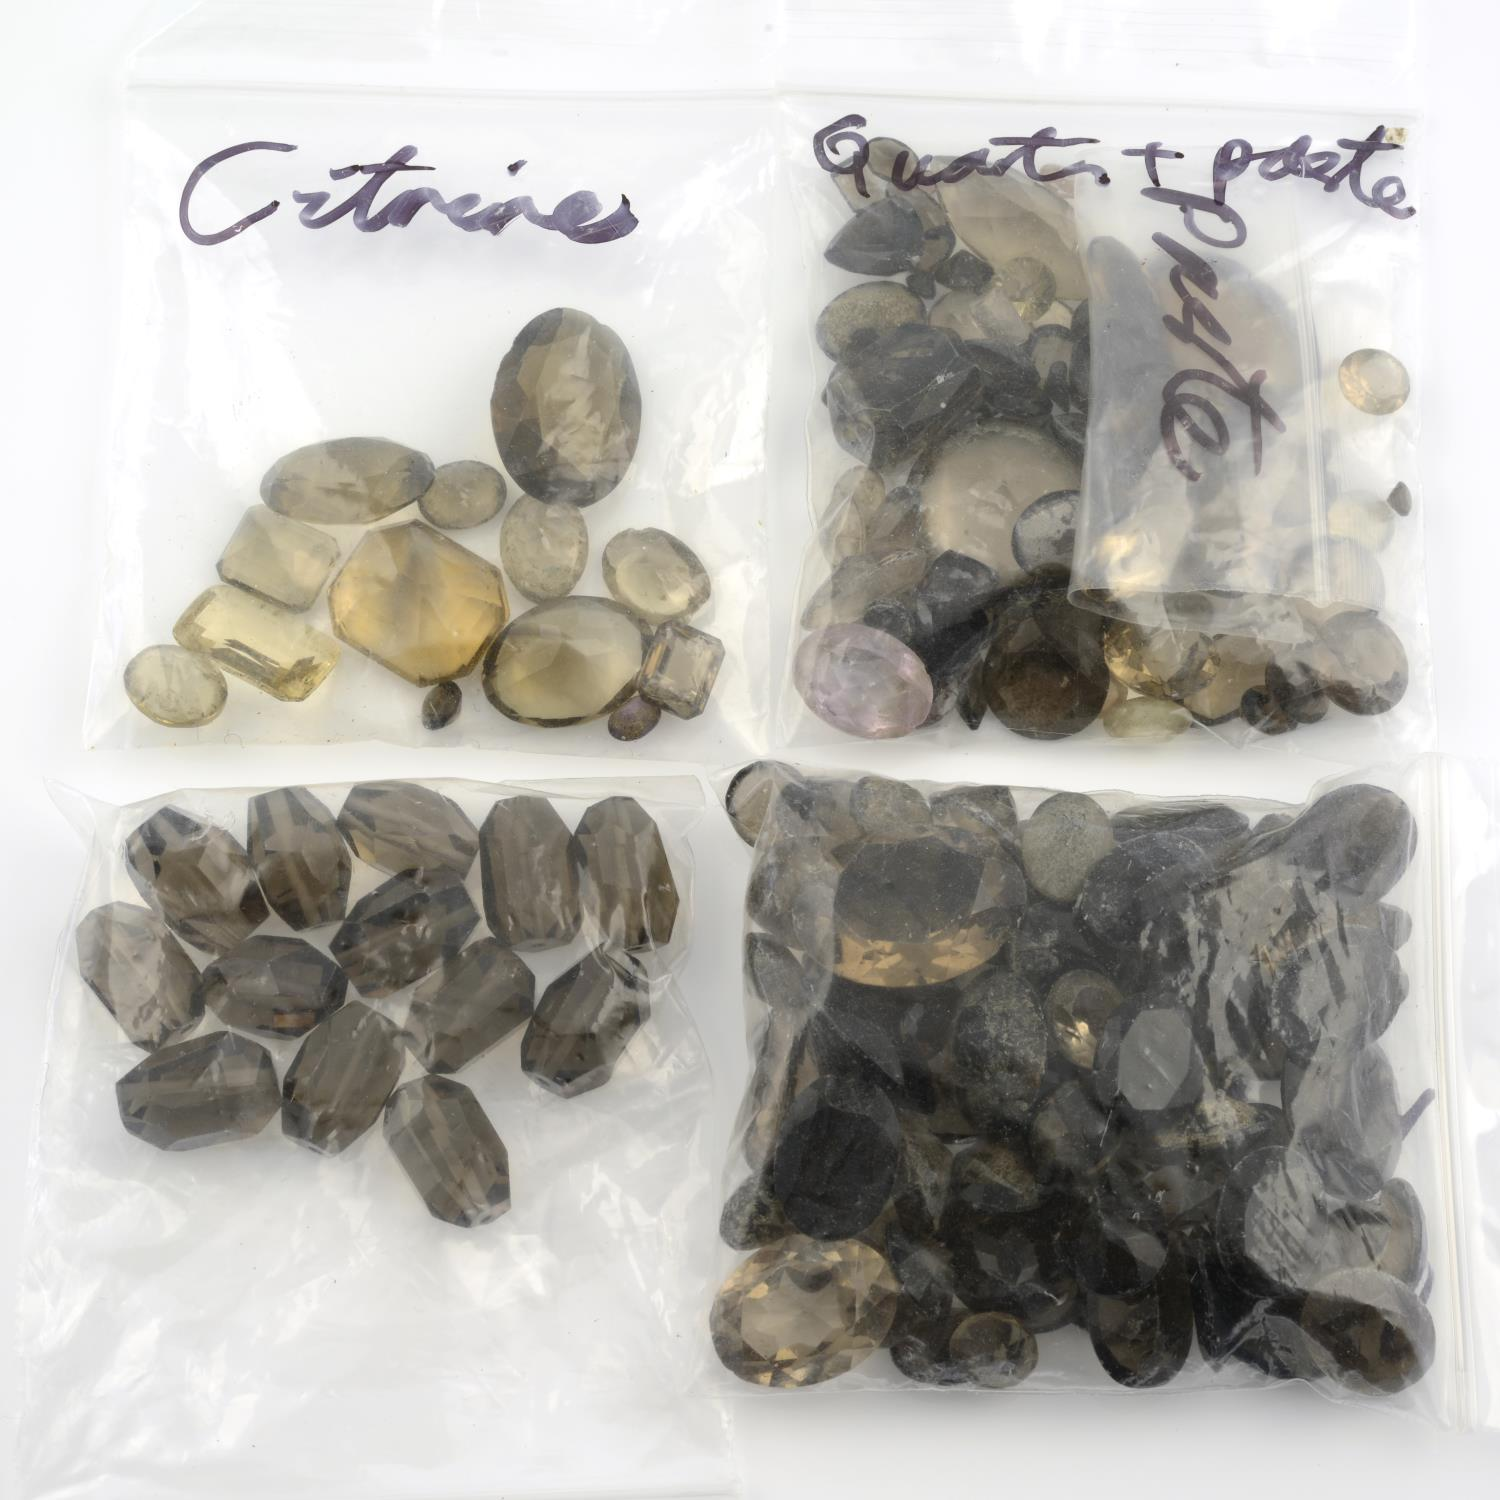 A selection of gemstones, to include predominantly smoky quartz, weighing 307gms. - Image 2 of 3